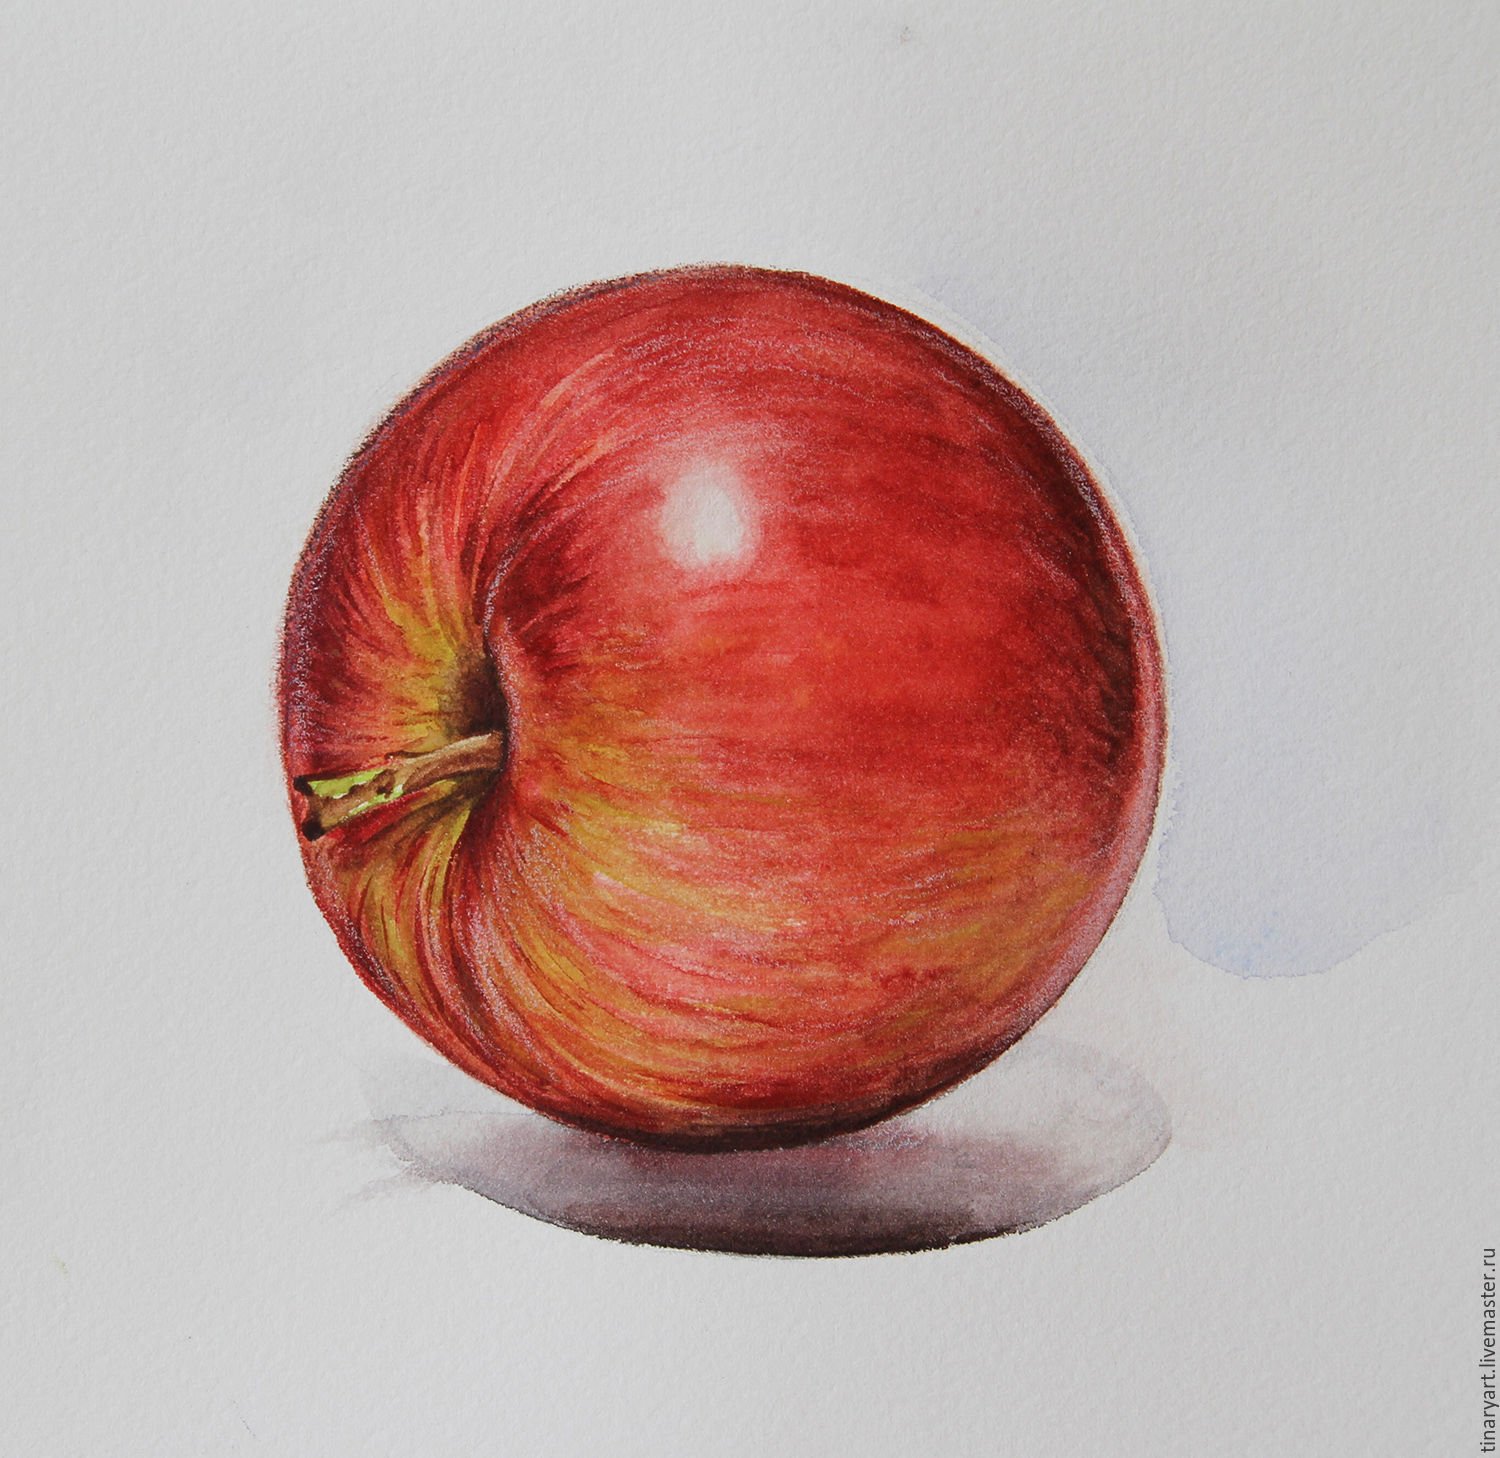 1500x1458 Watercolor Apple Shop Online On Livemaster With Shipping